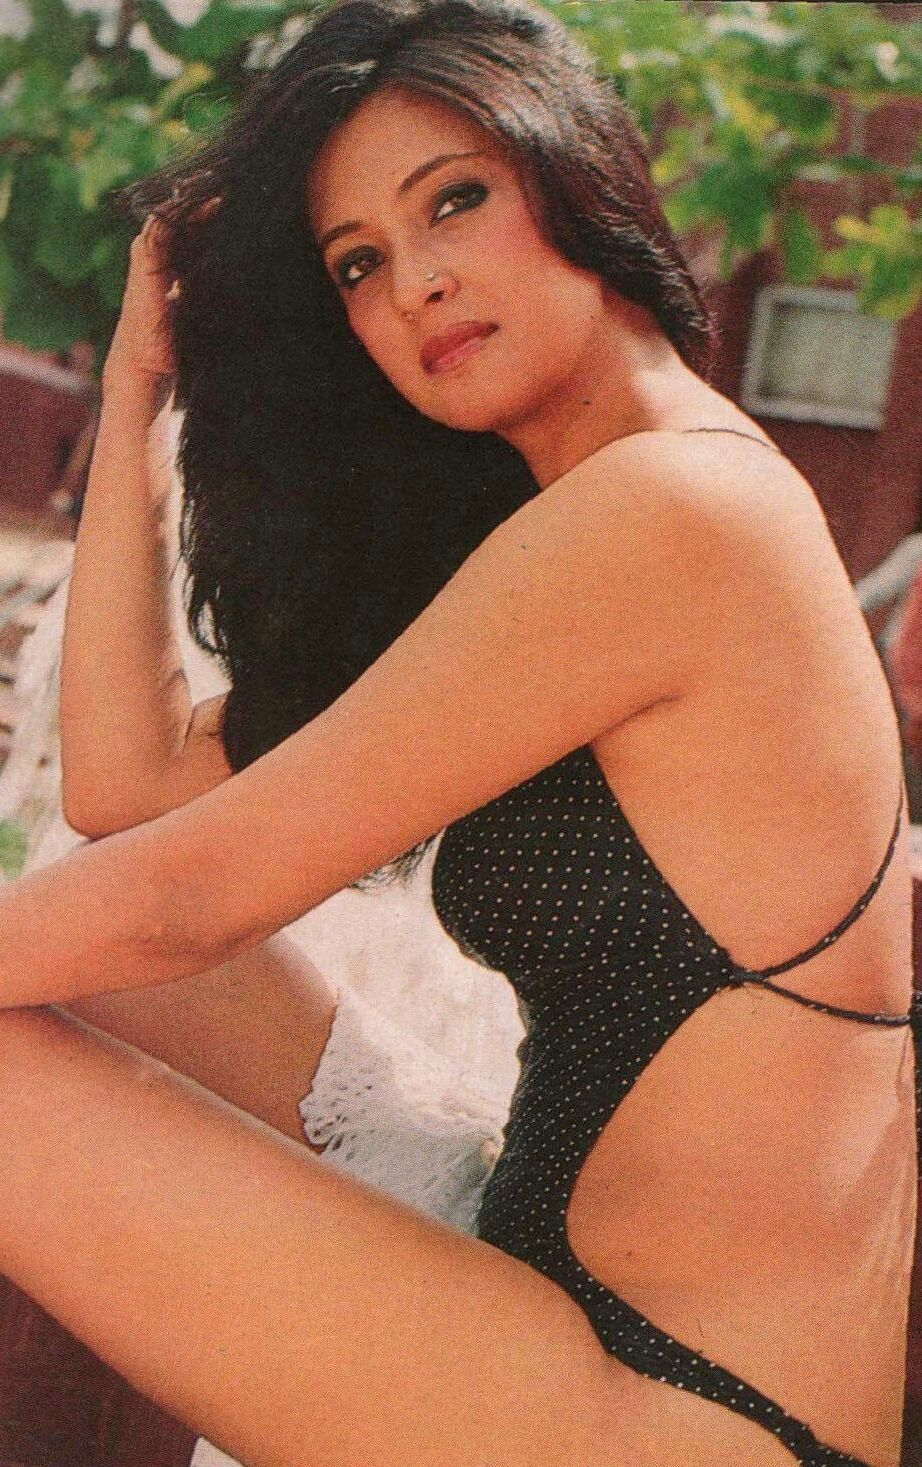 Moon Moon Sen In A Bikini Photo Shoot